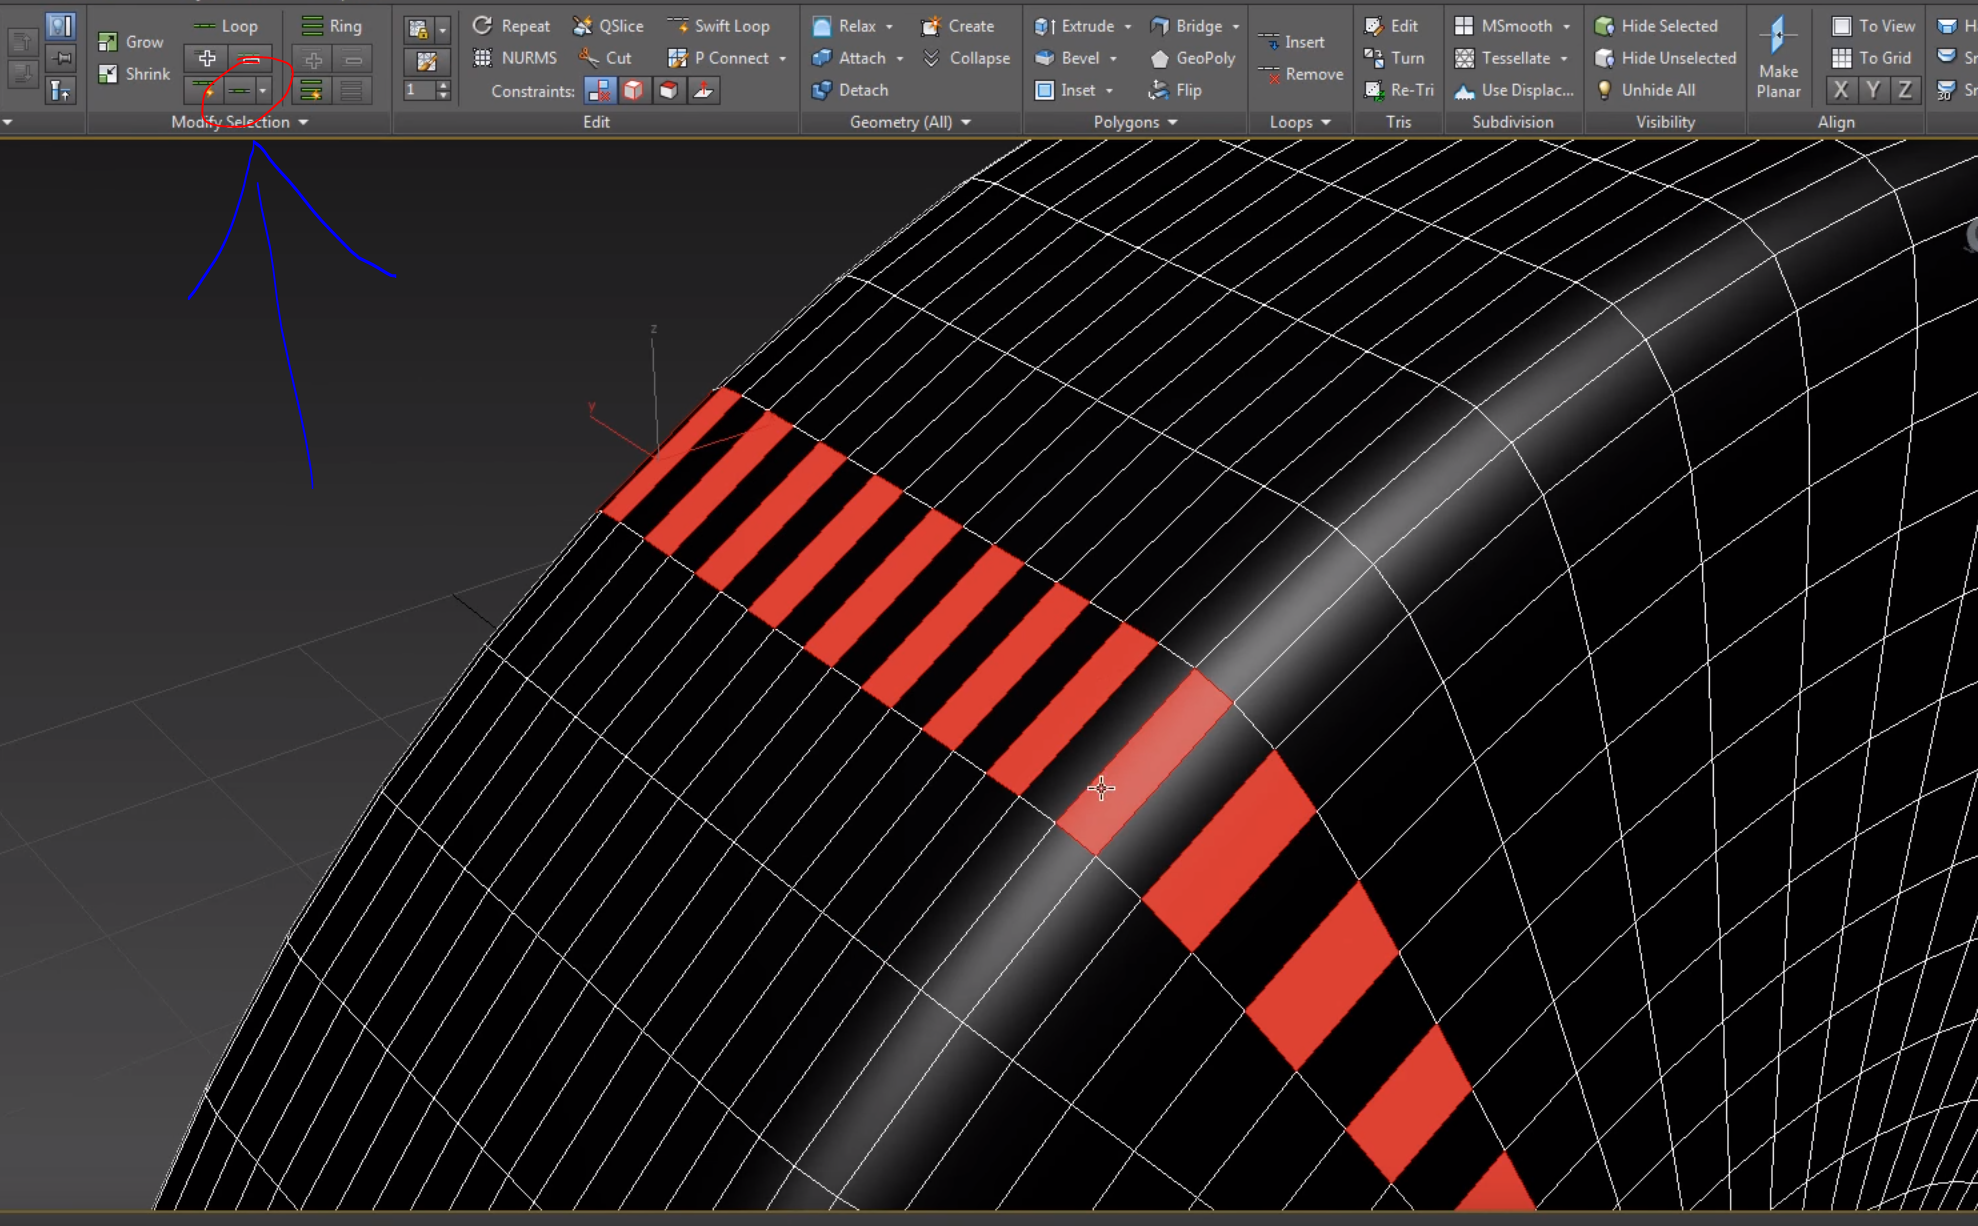 Anxiously waiting for Dot Loop tool like 3ds max - Autodesk Community